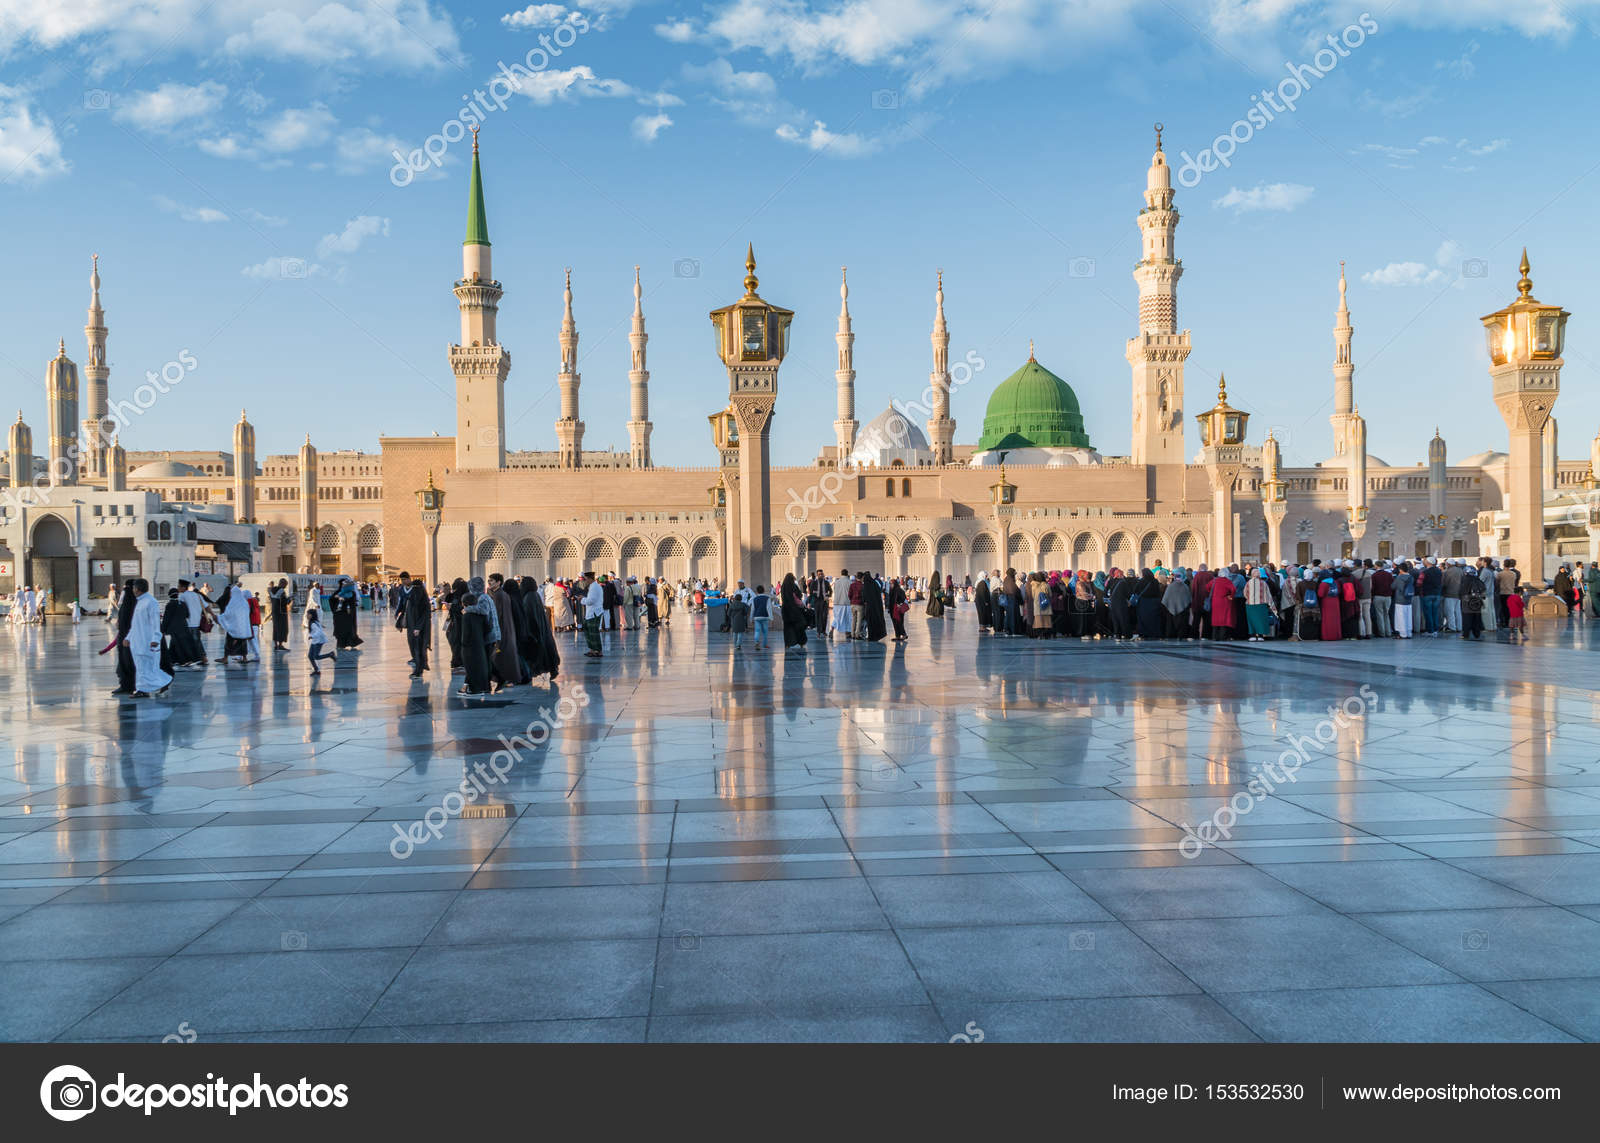 Muslims gathered for worship Nabawi Mosque, Medina, Saudi